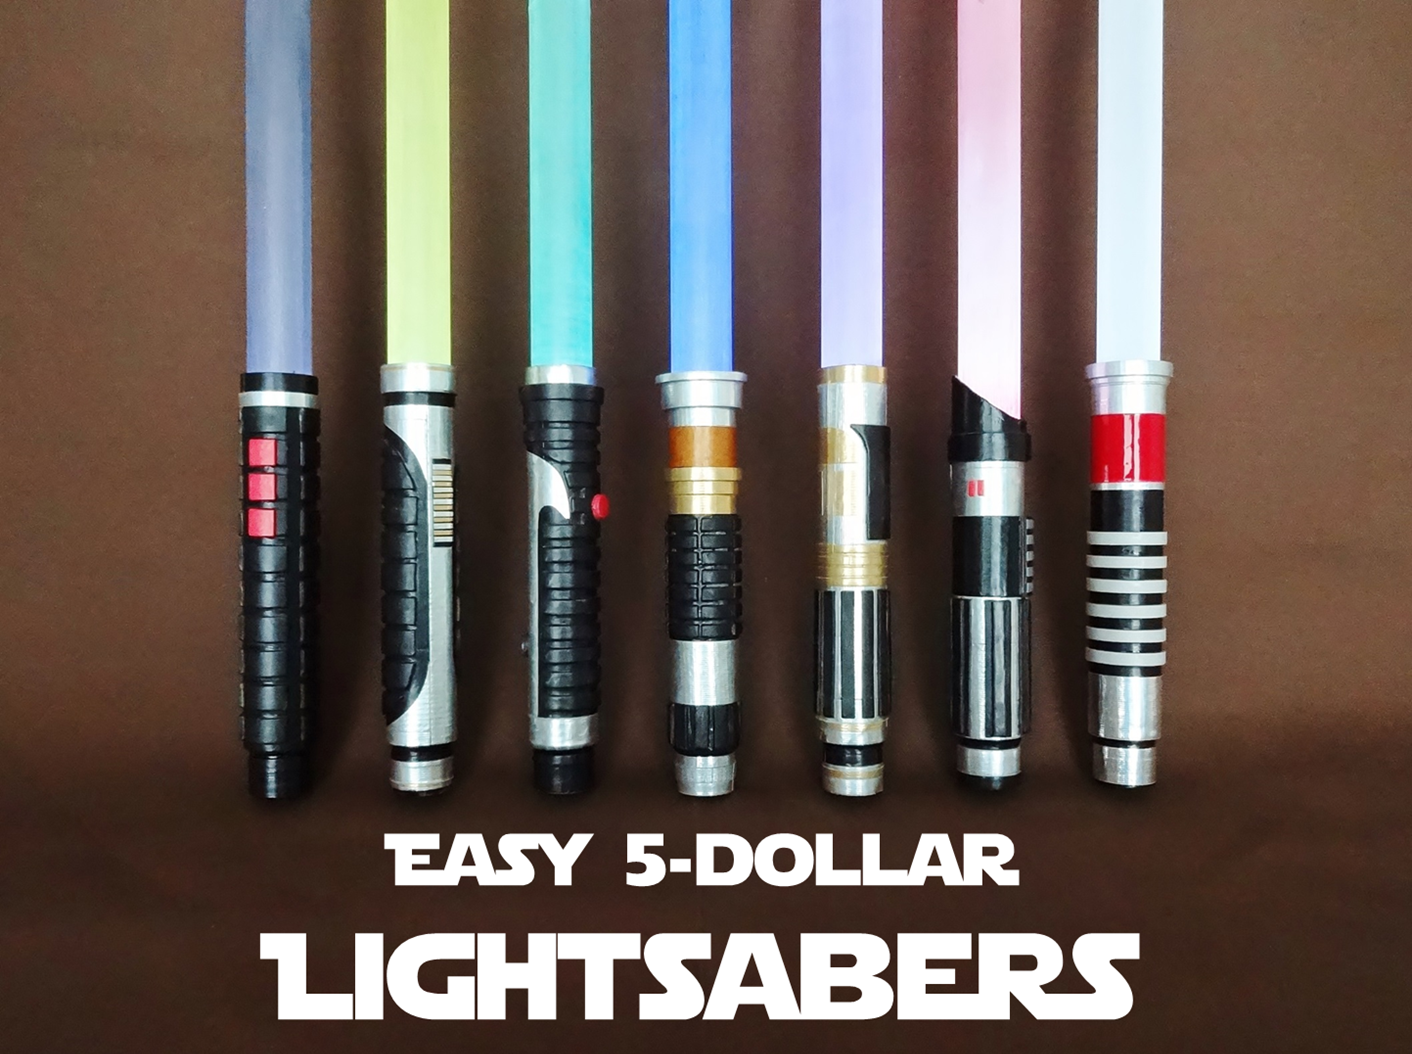 Picture of Easy $5 Lightsabers